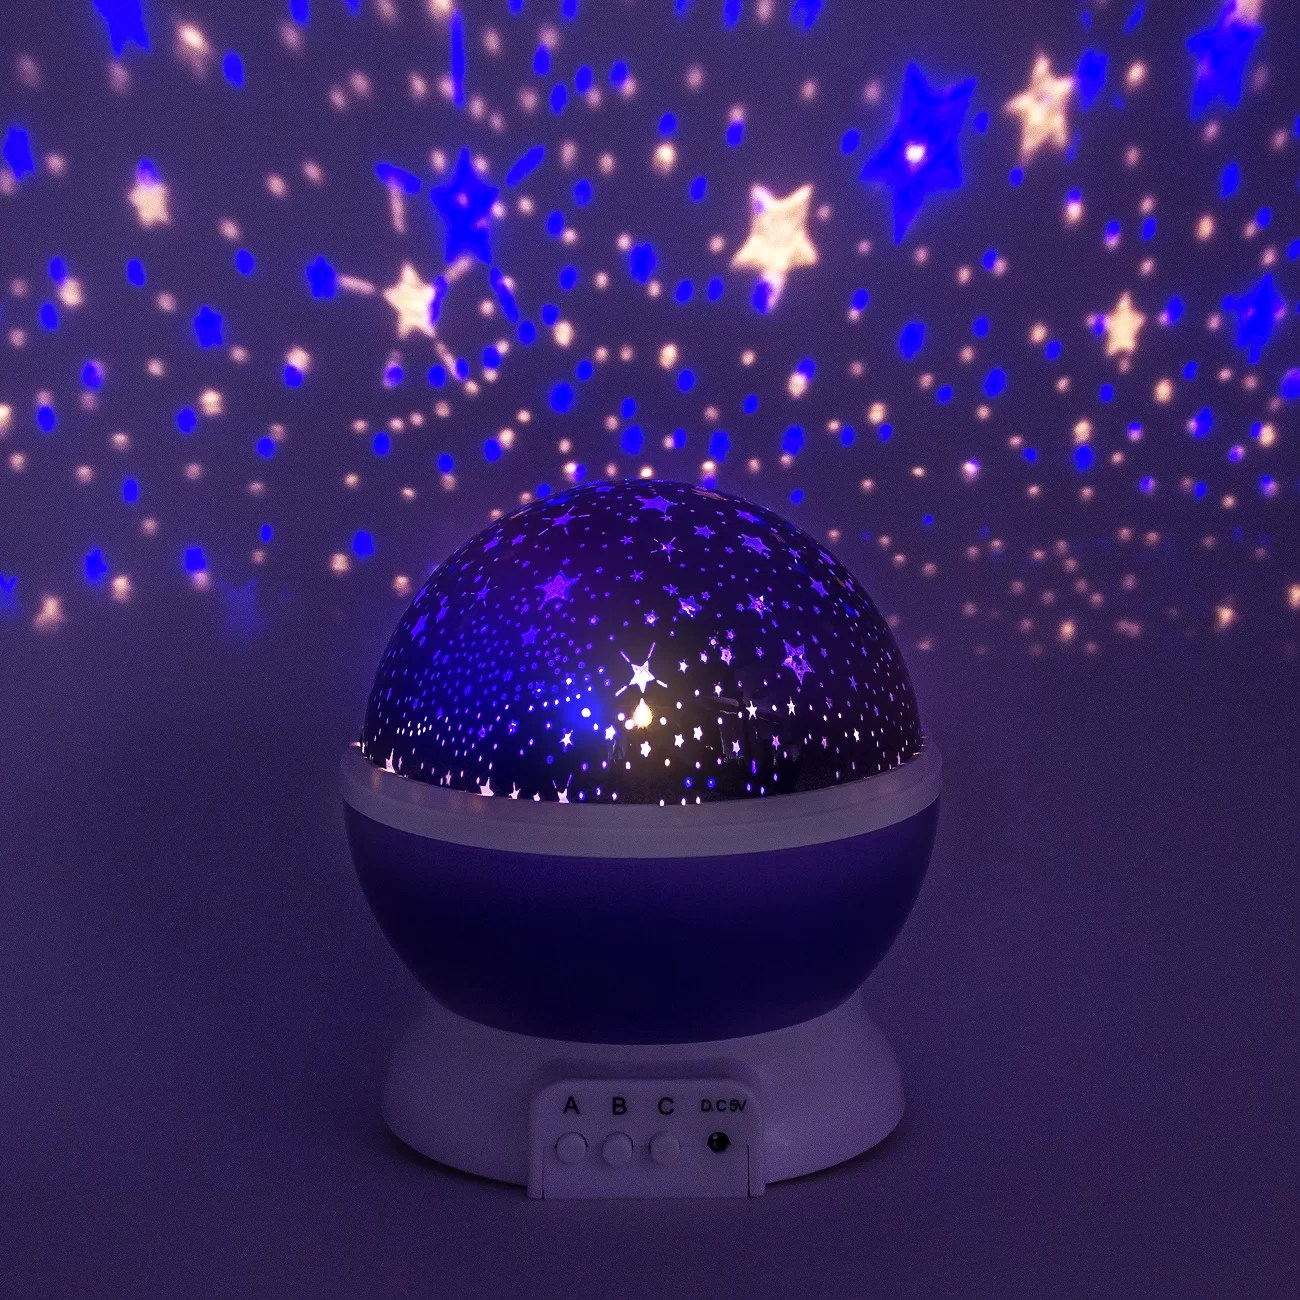 Baby Star Light Projector Ggi International Romantic Cosmos Star And Sky Moon Night